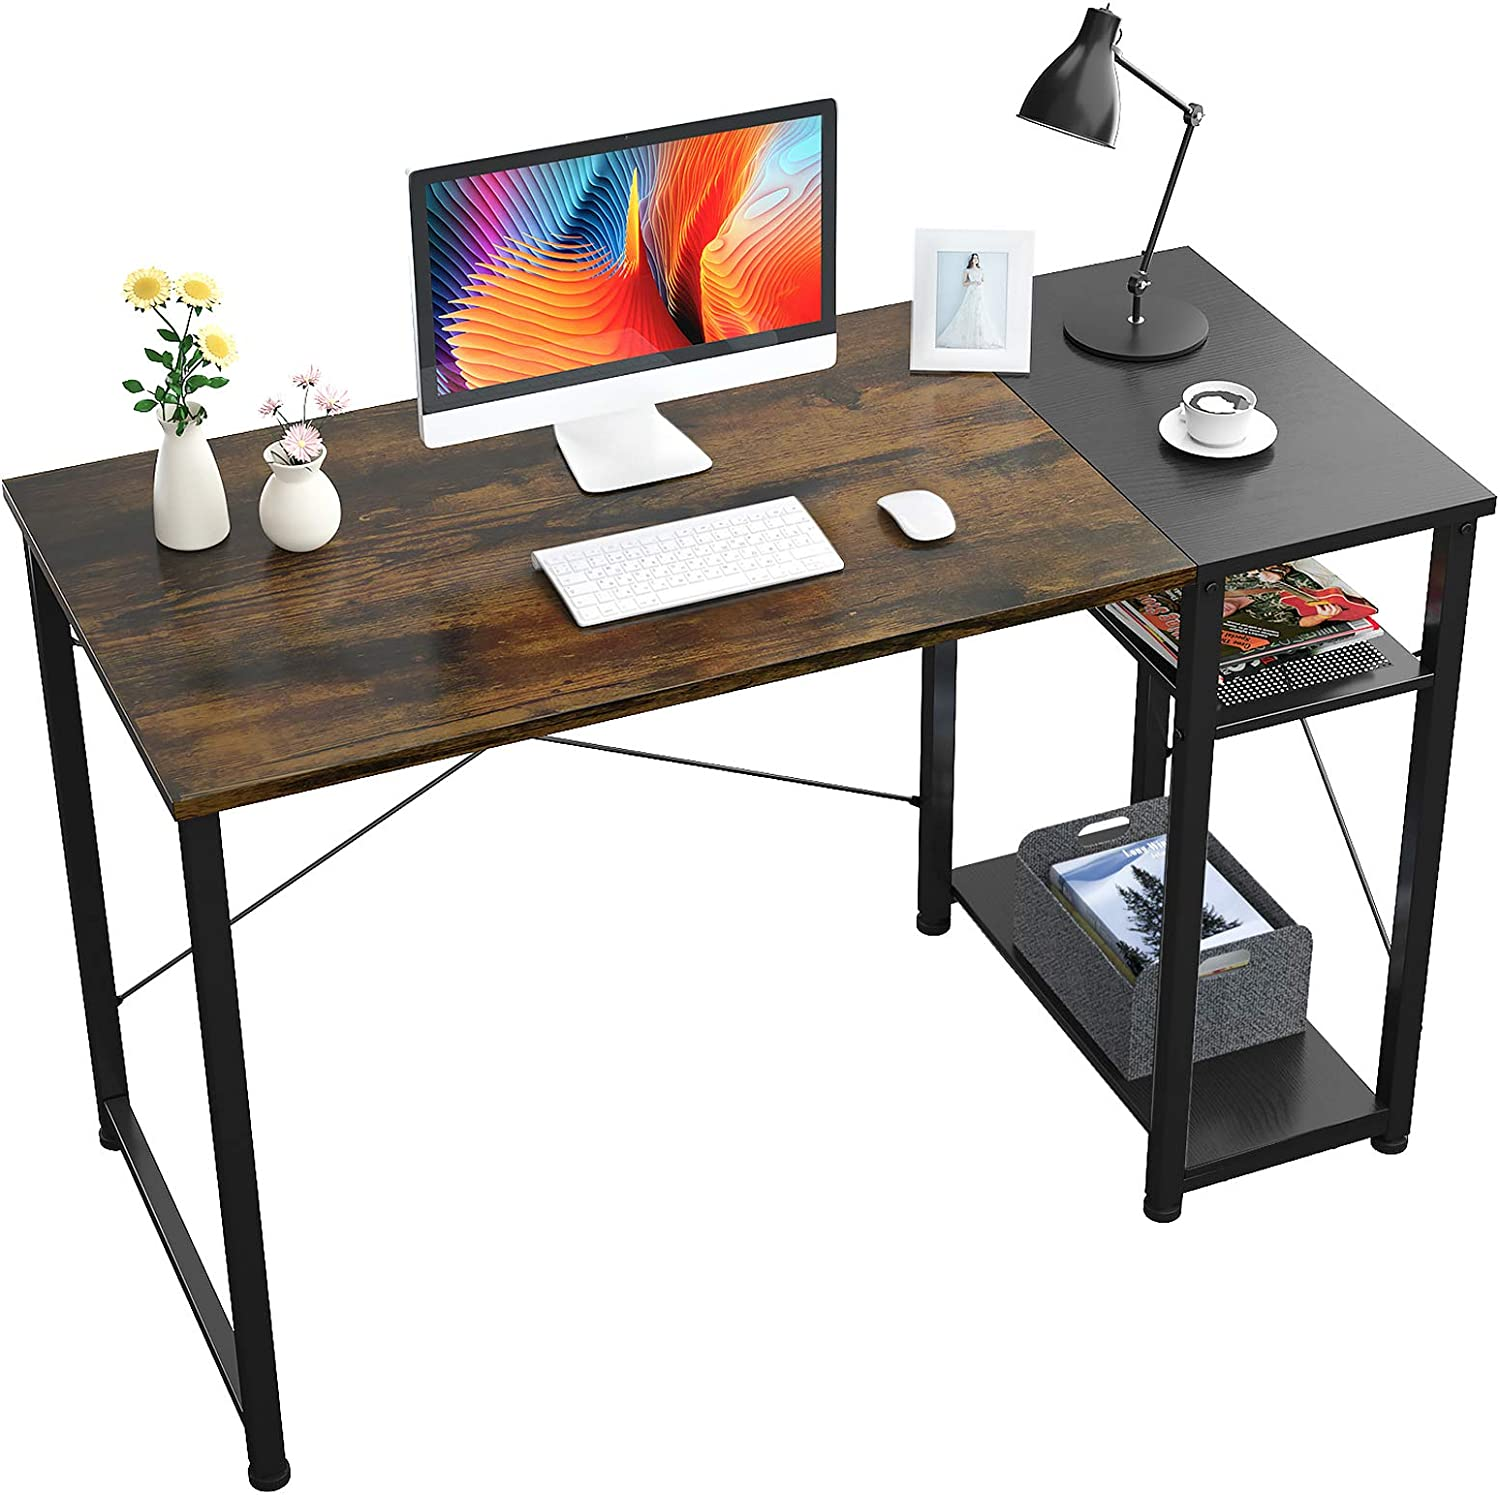 Foxemart Home Office Computer Desk, 47 inch Sturdy Writing Desk with 2-Tier Storage Shelves, Modern Simple Style PC Desk, for Home, Office, Study Room, Bedroom, (Vintage Oak Finish)